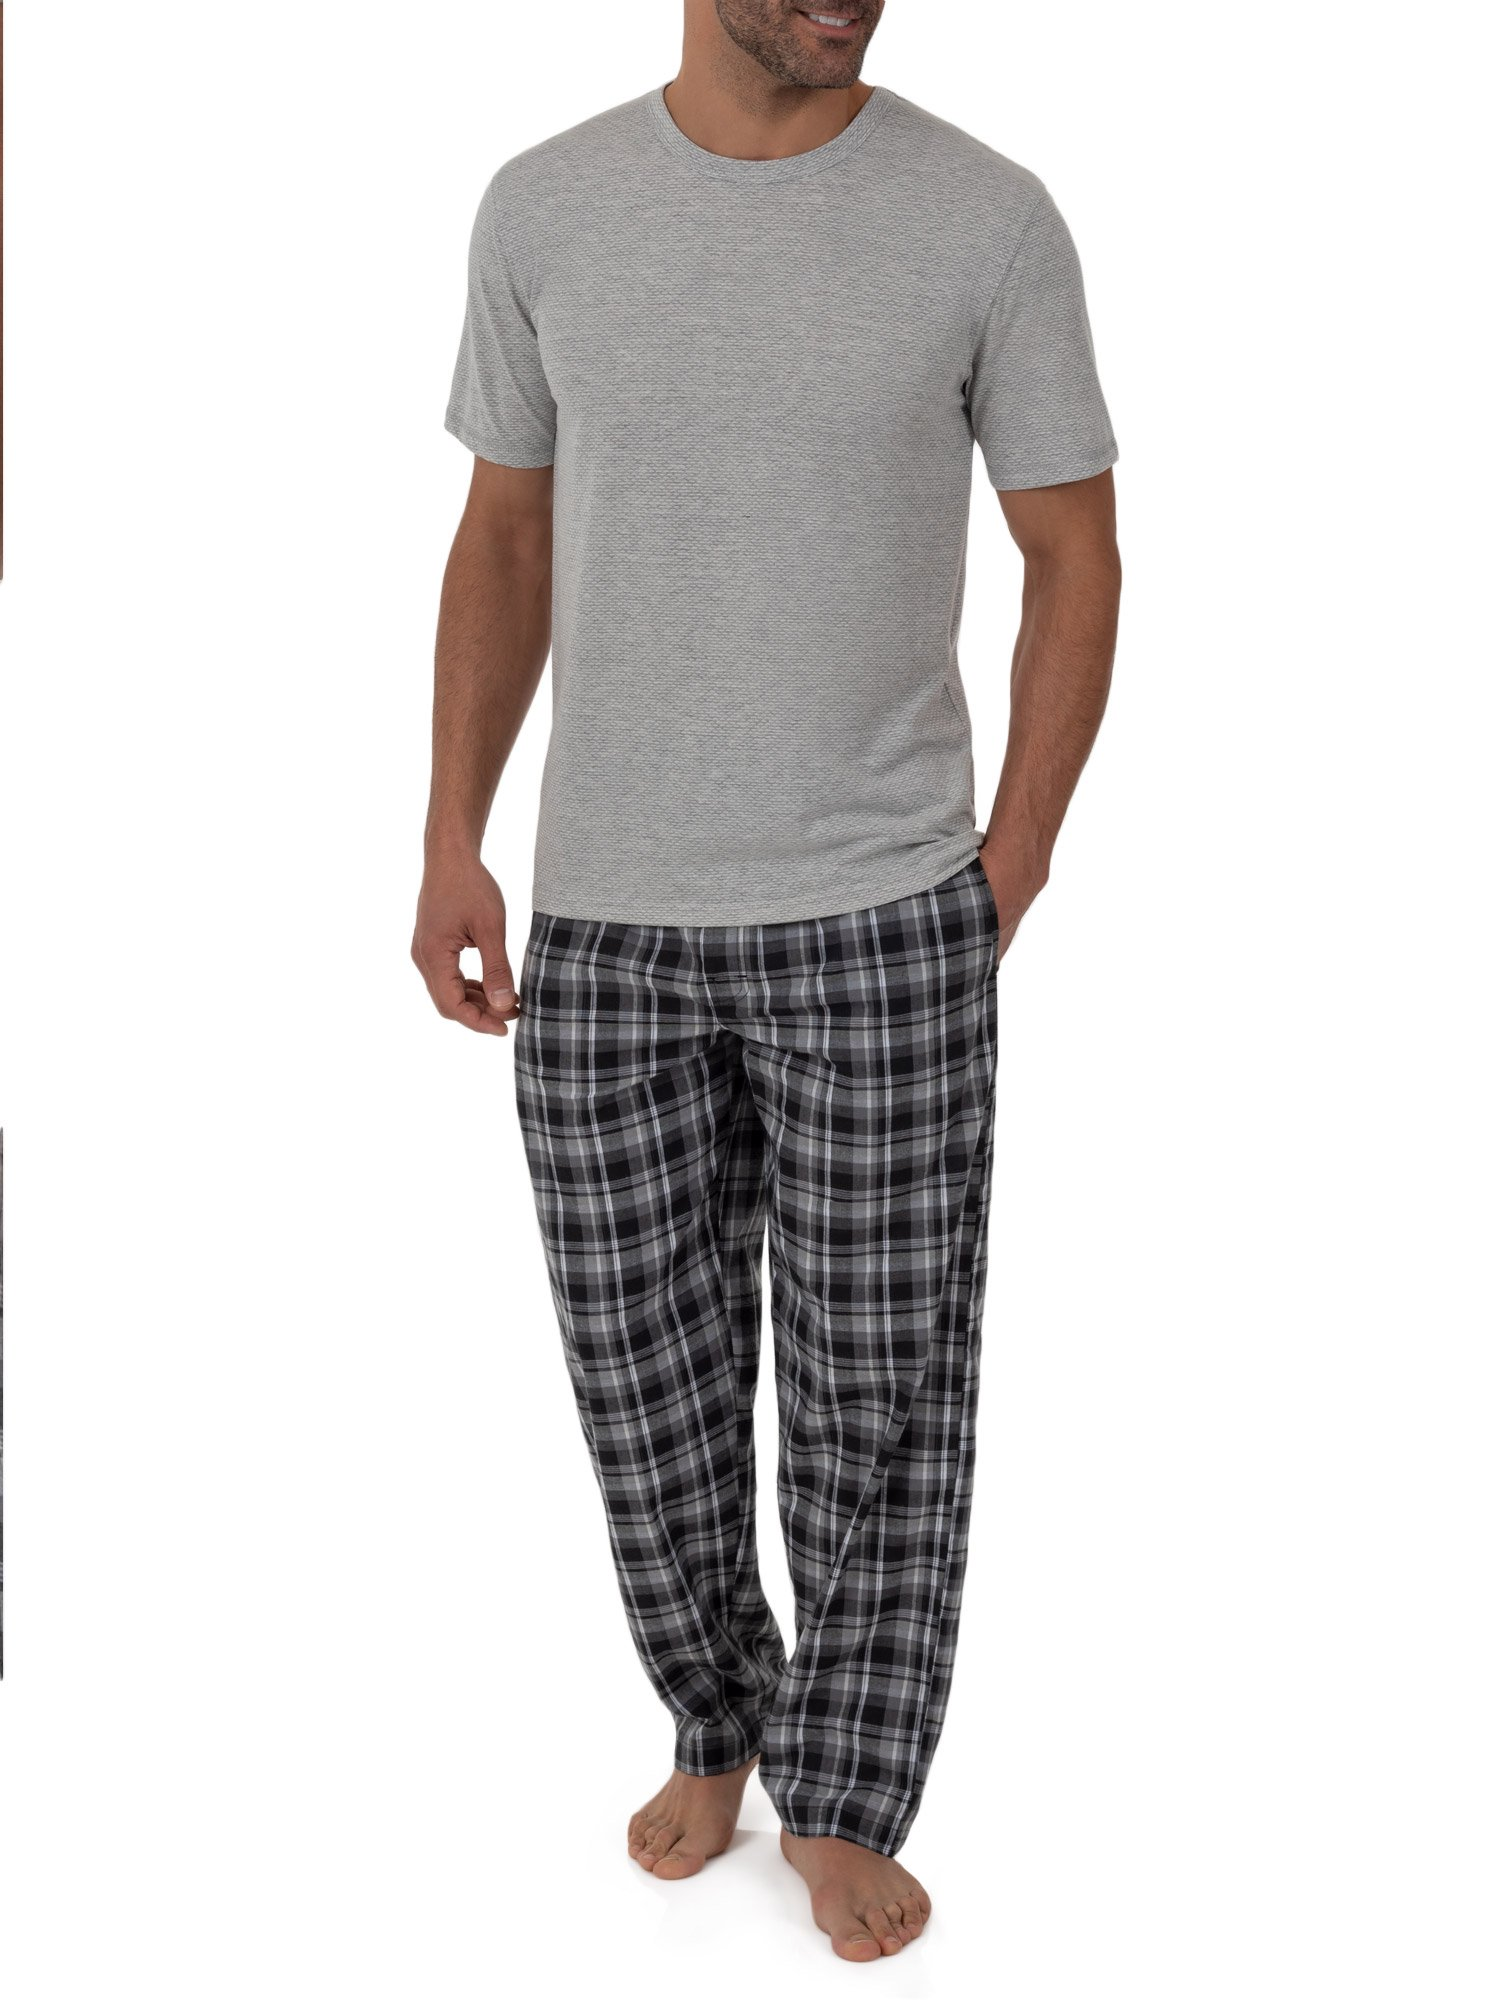 Fruit of the Loom Breathable Mesh Top with Woven Pant Pajama Set